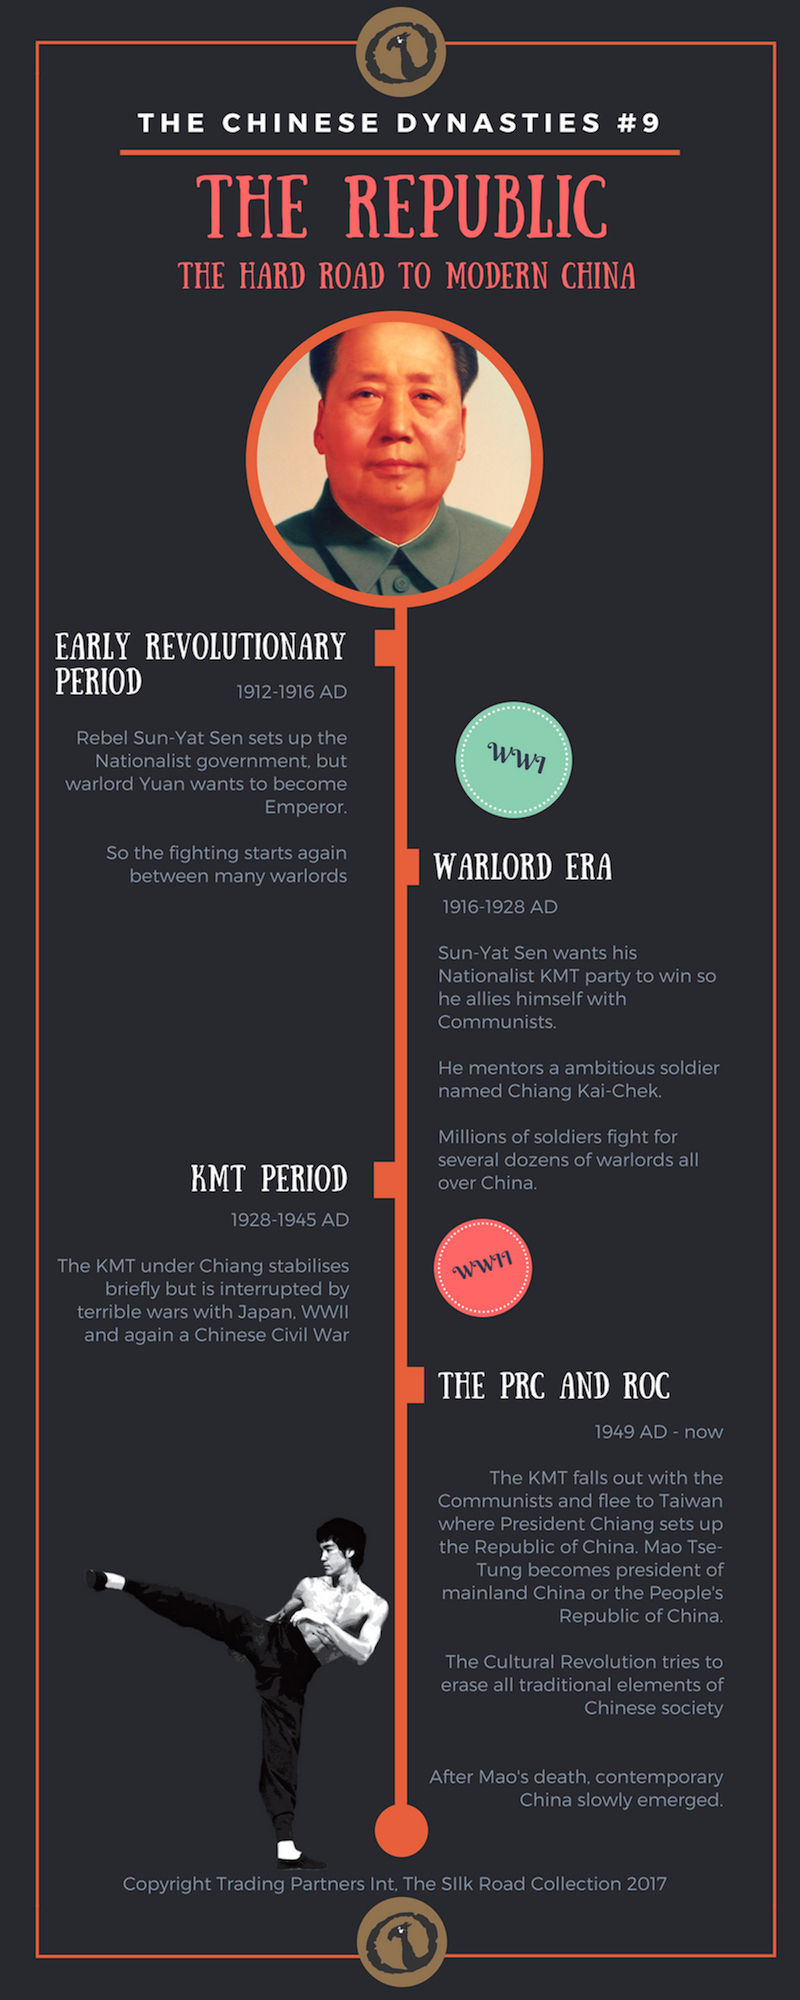 Timeline image of The Chinese Dynasties: The Republic - The hard road to modern China